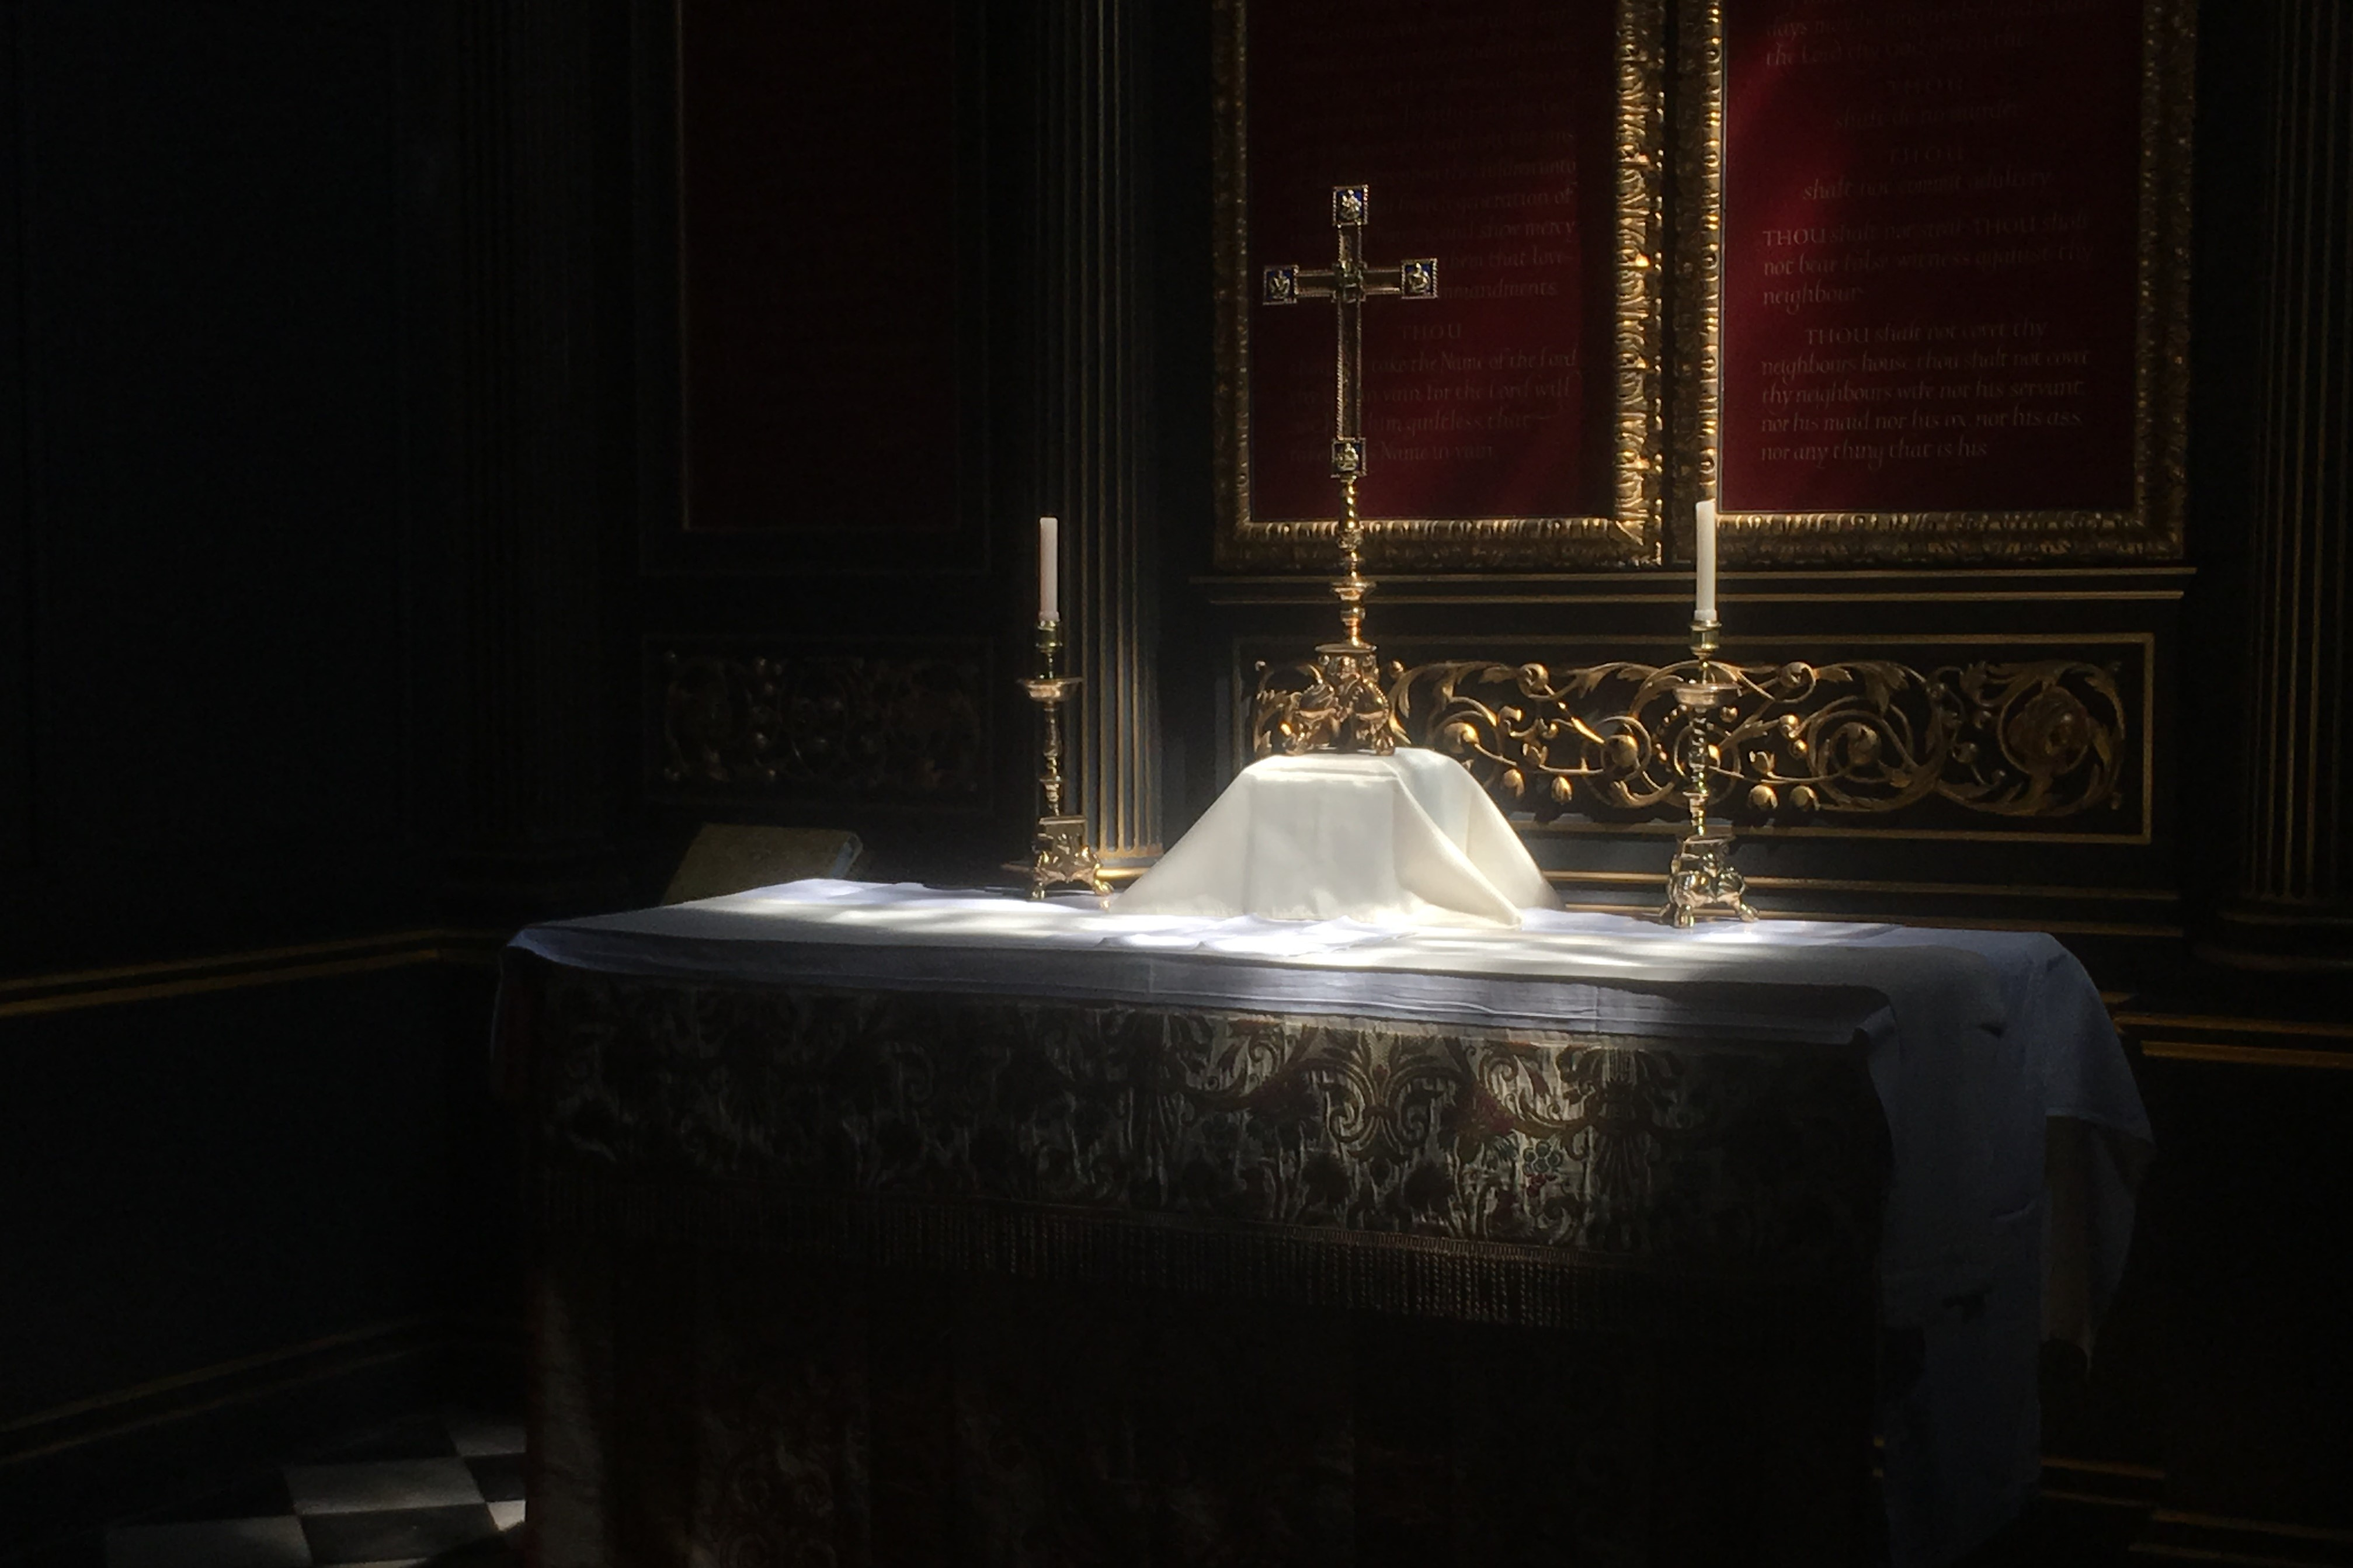 Light hitting the altar with candles and a cross